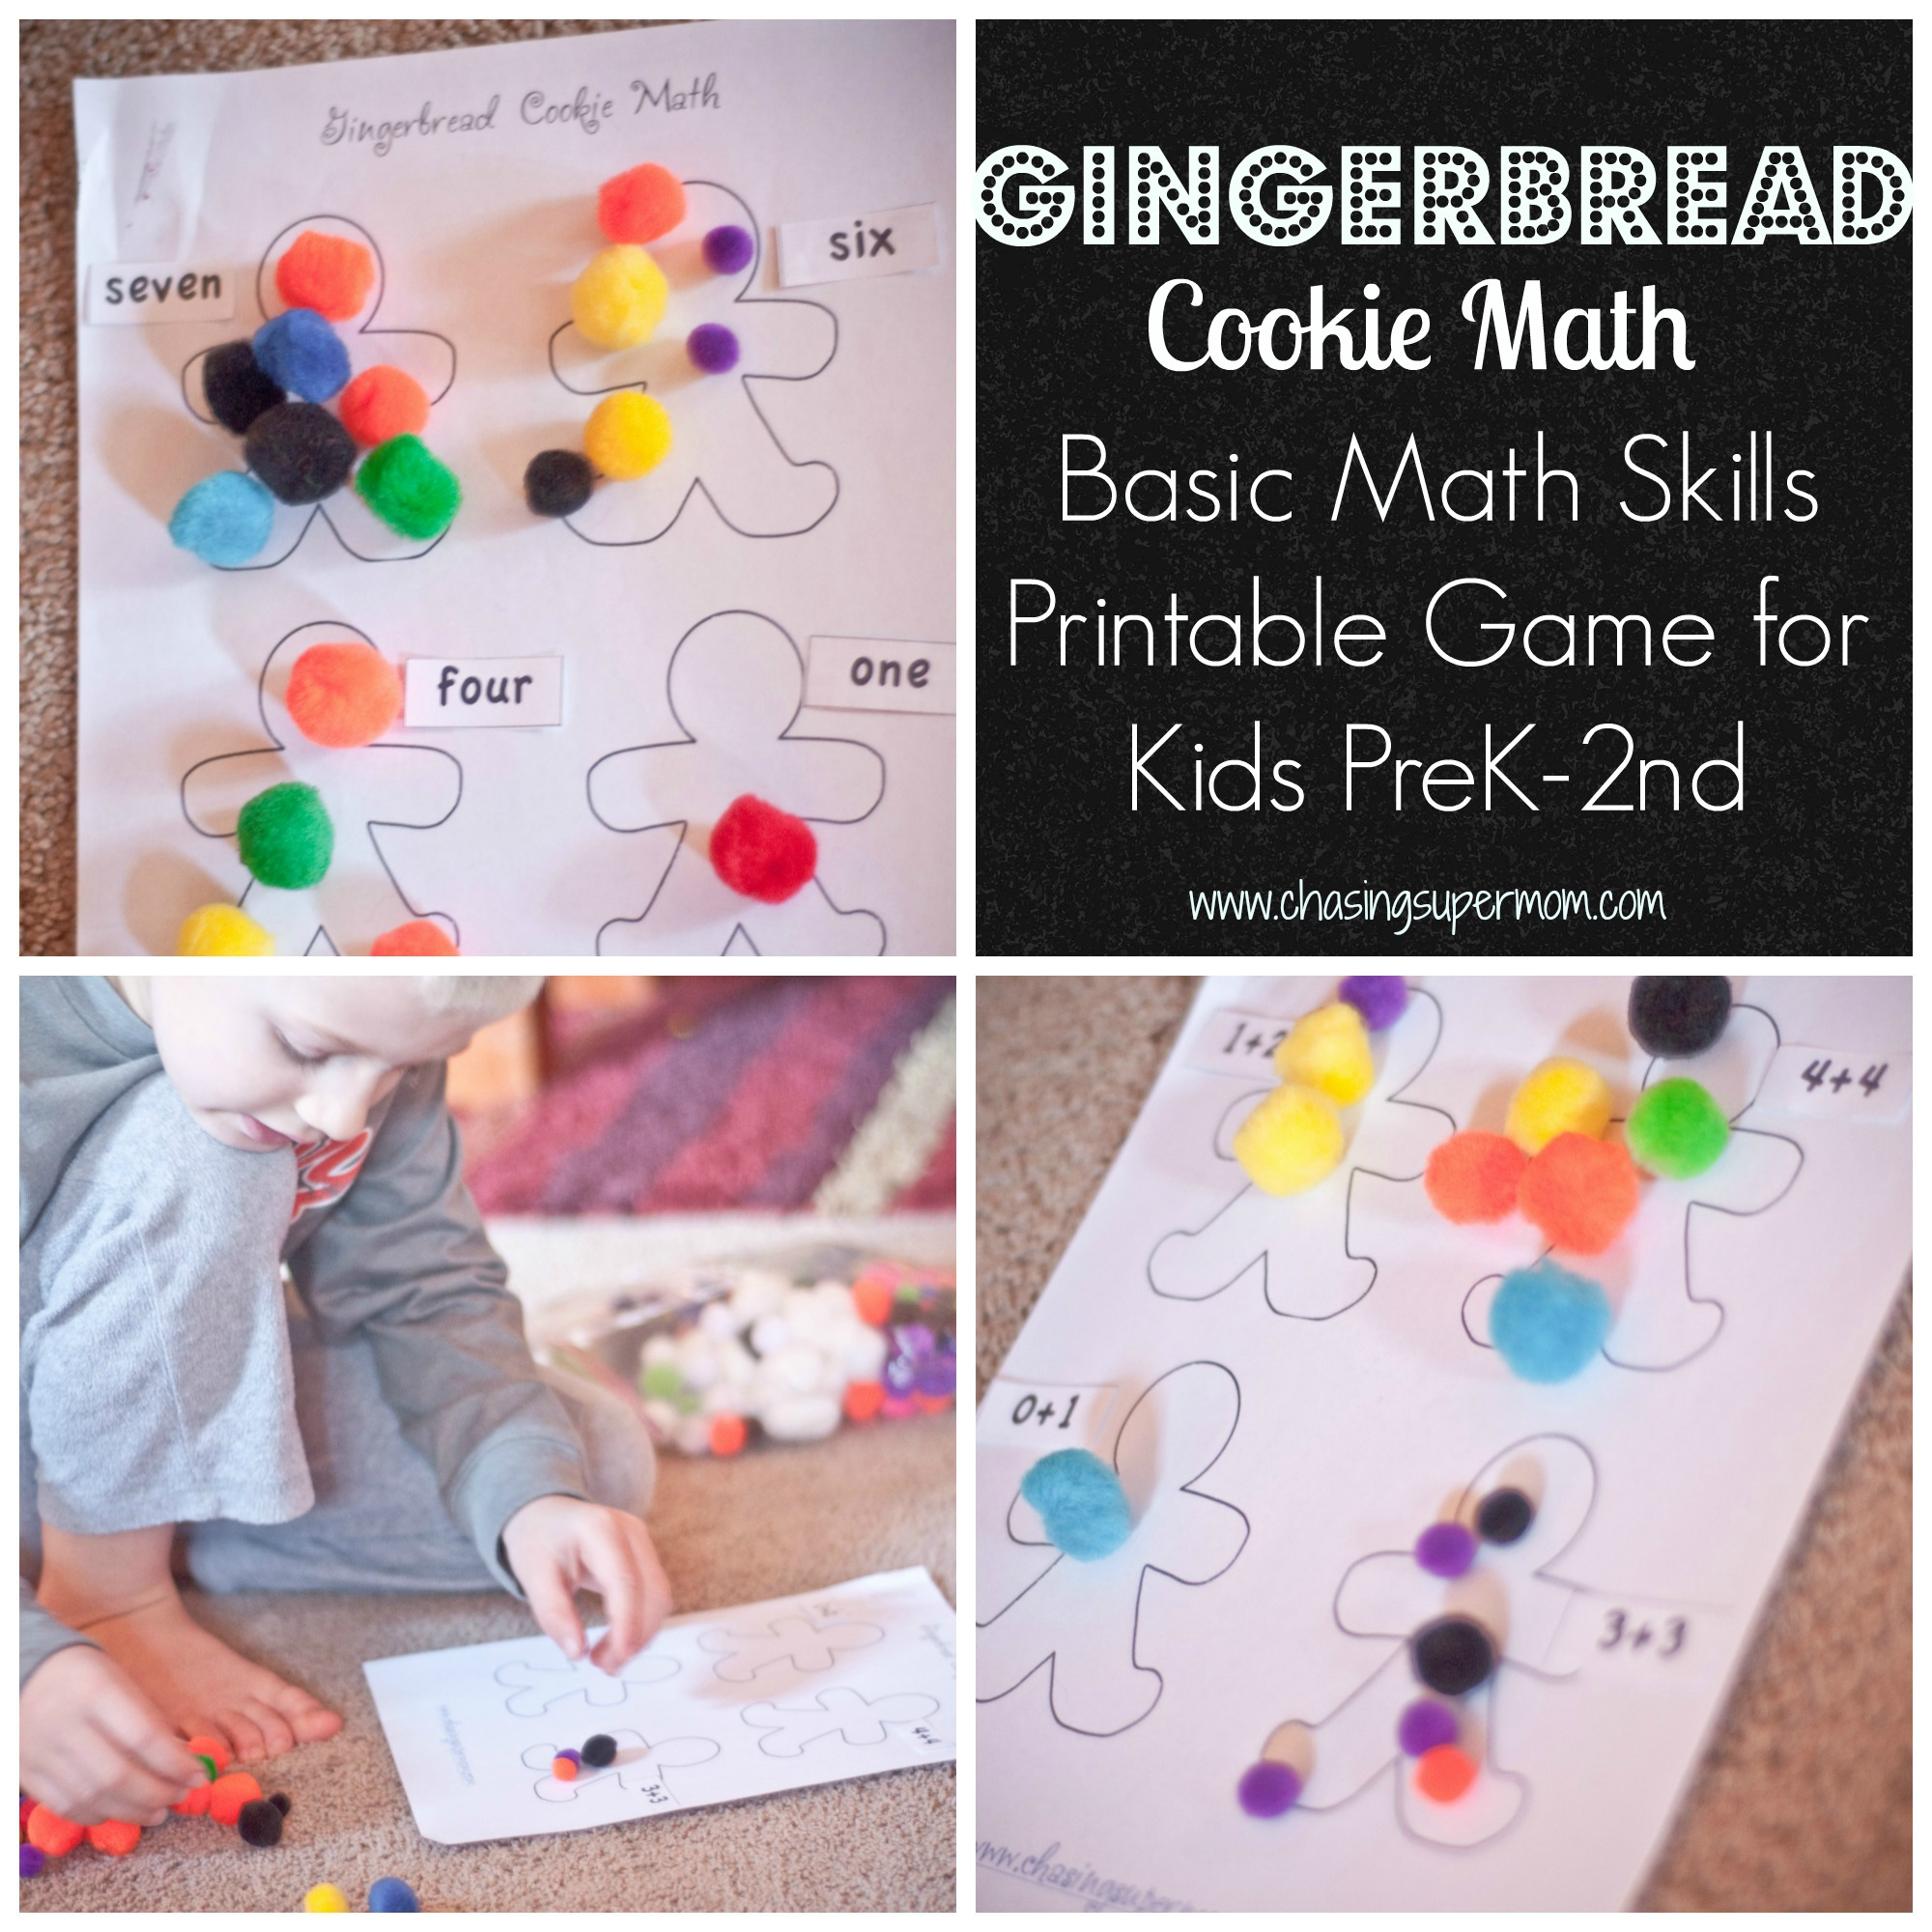 Gingerbread Cookie Math – Basic Math Skills Printable Game for Kids PreK-2nd